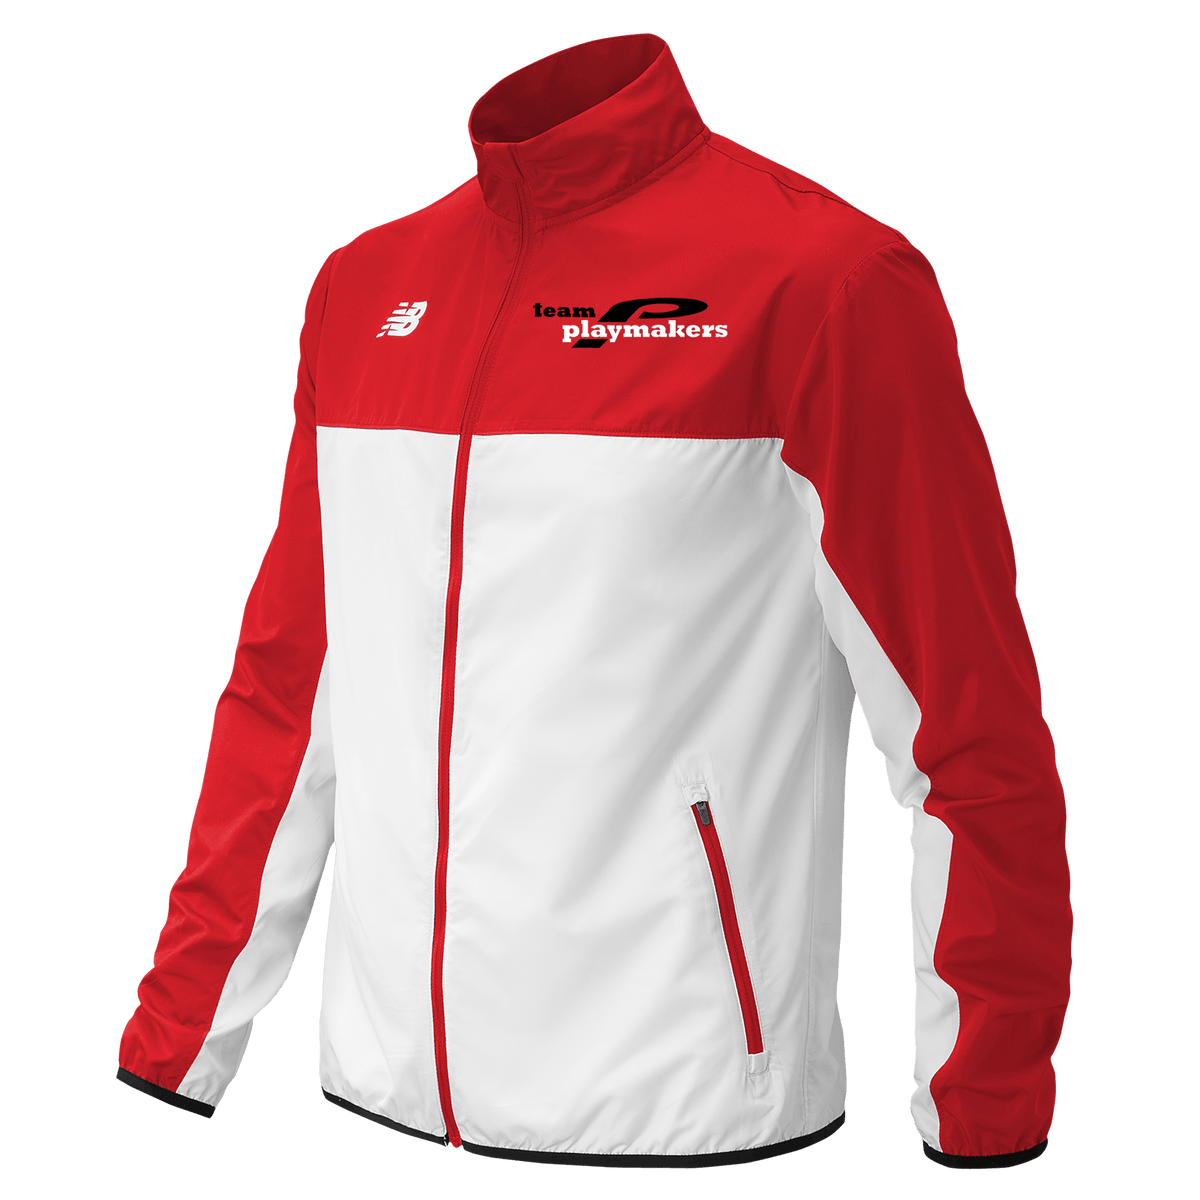 NB Team Playmakers Jacket Red/White (Men)